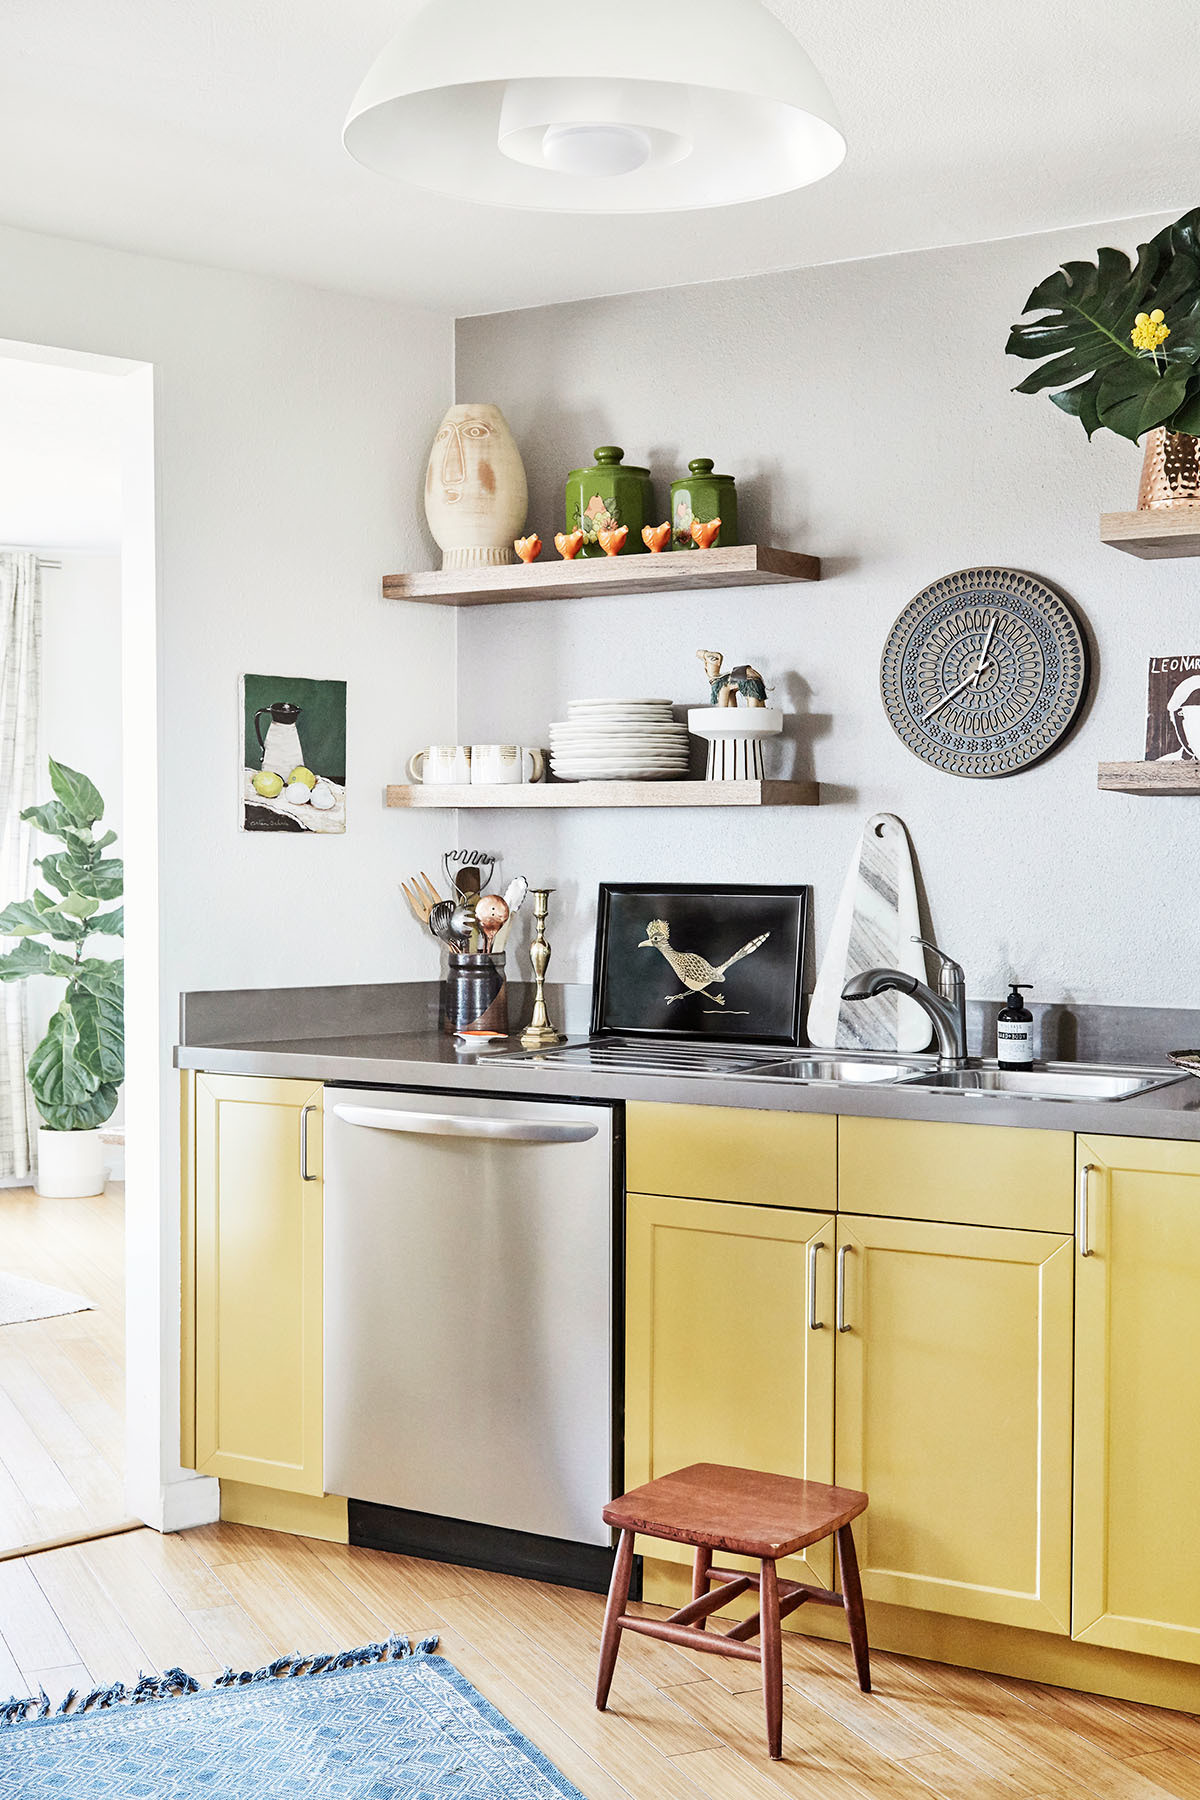 Yellow cabinets and repurposed vintage ceramics create a playful vibe in the dome house kitchen.